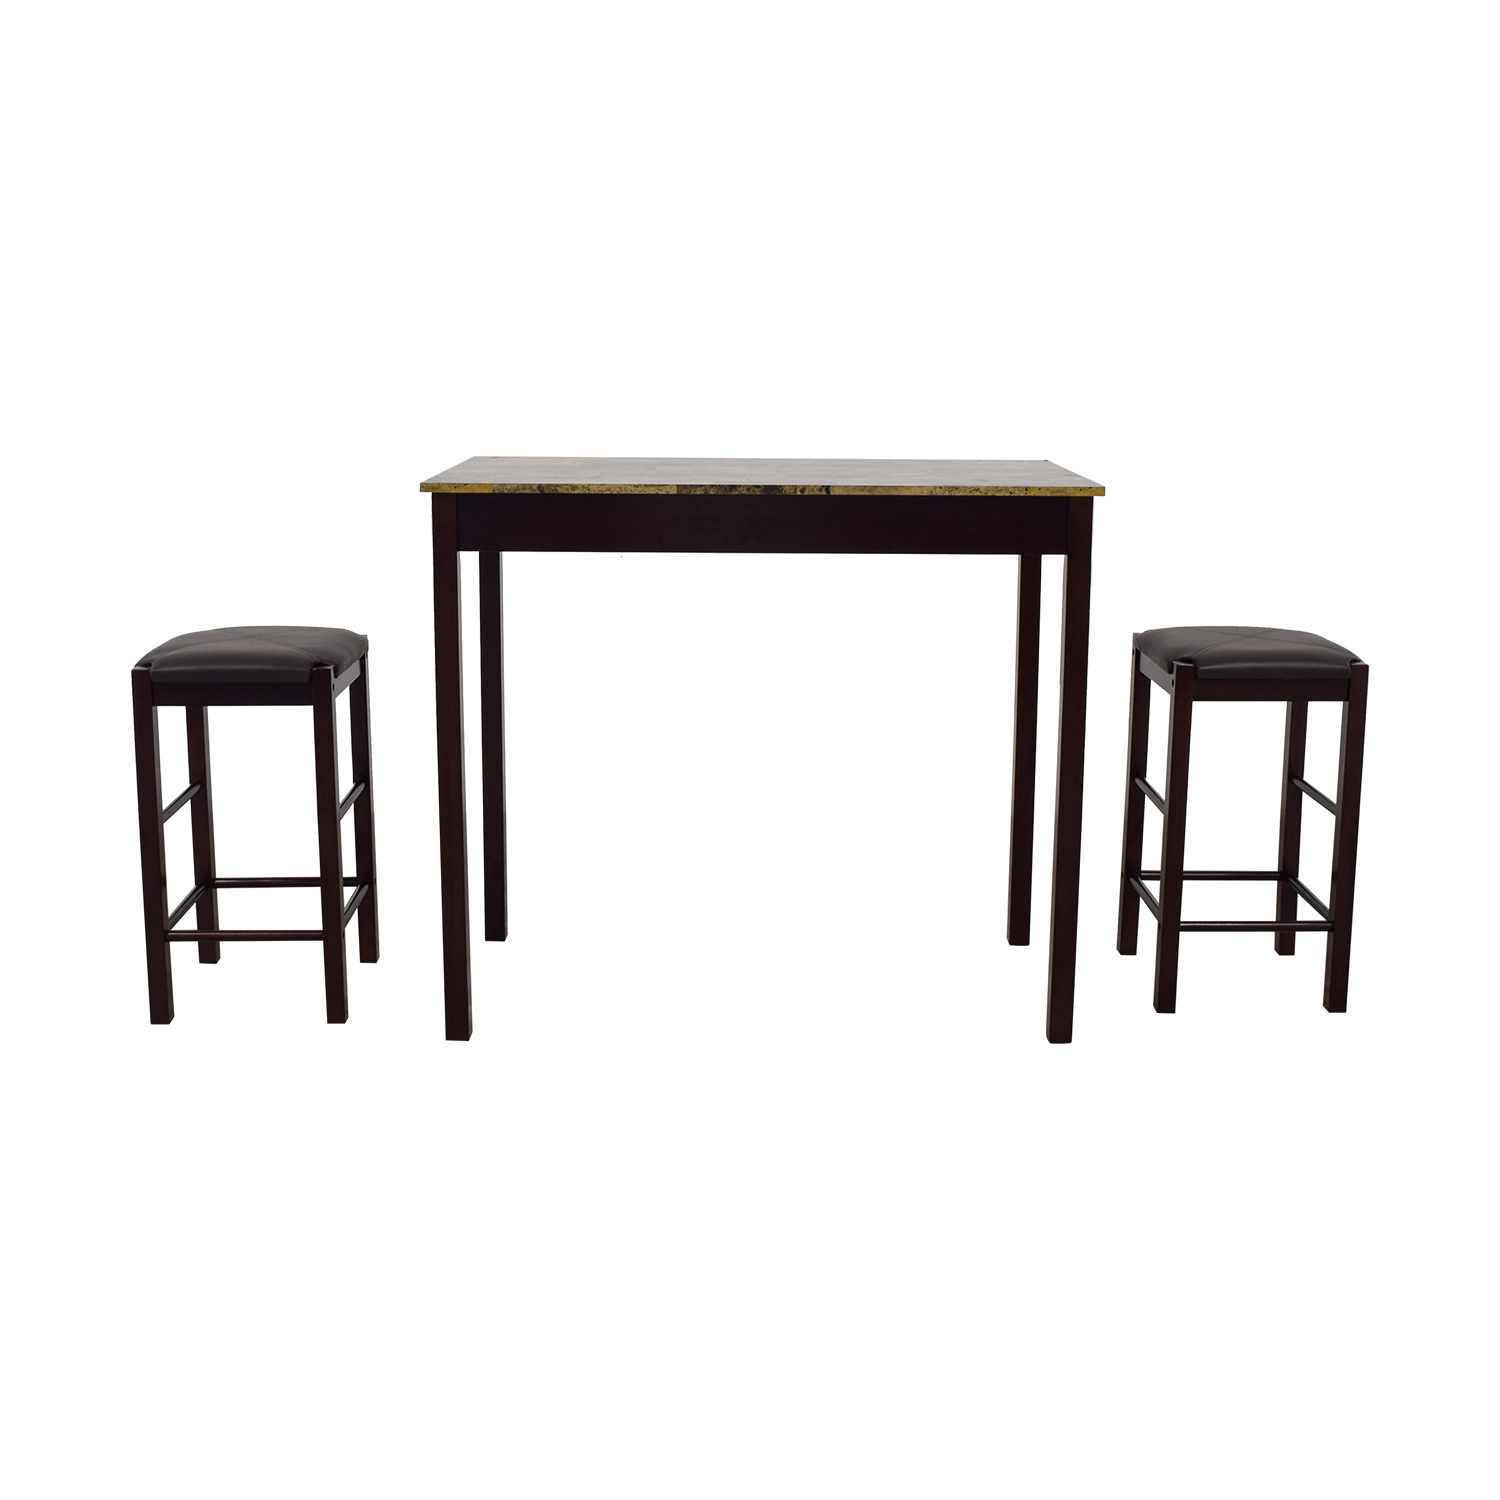 shop Linon Home Linon Home Tavern Kitchen Set with Brown Leather Stools online